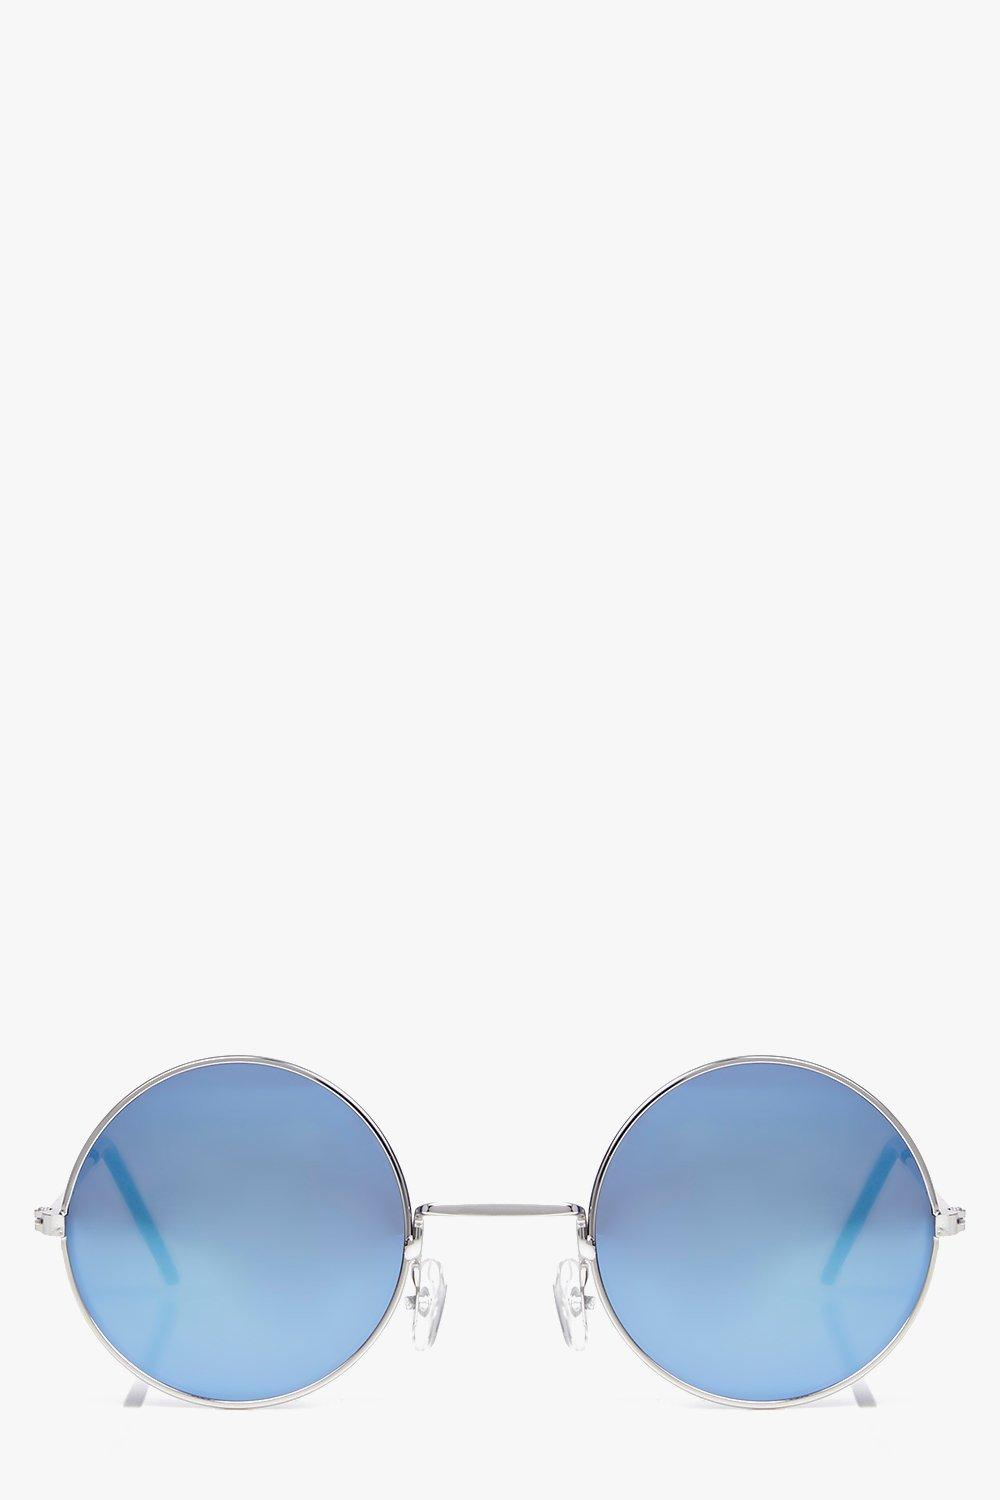 Ava Simple Skinny Round Frame Sunglasses